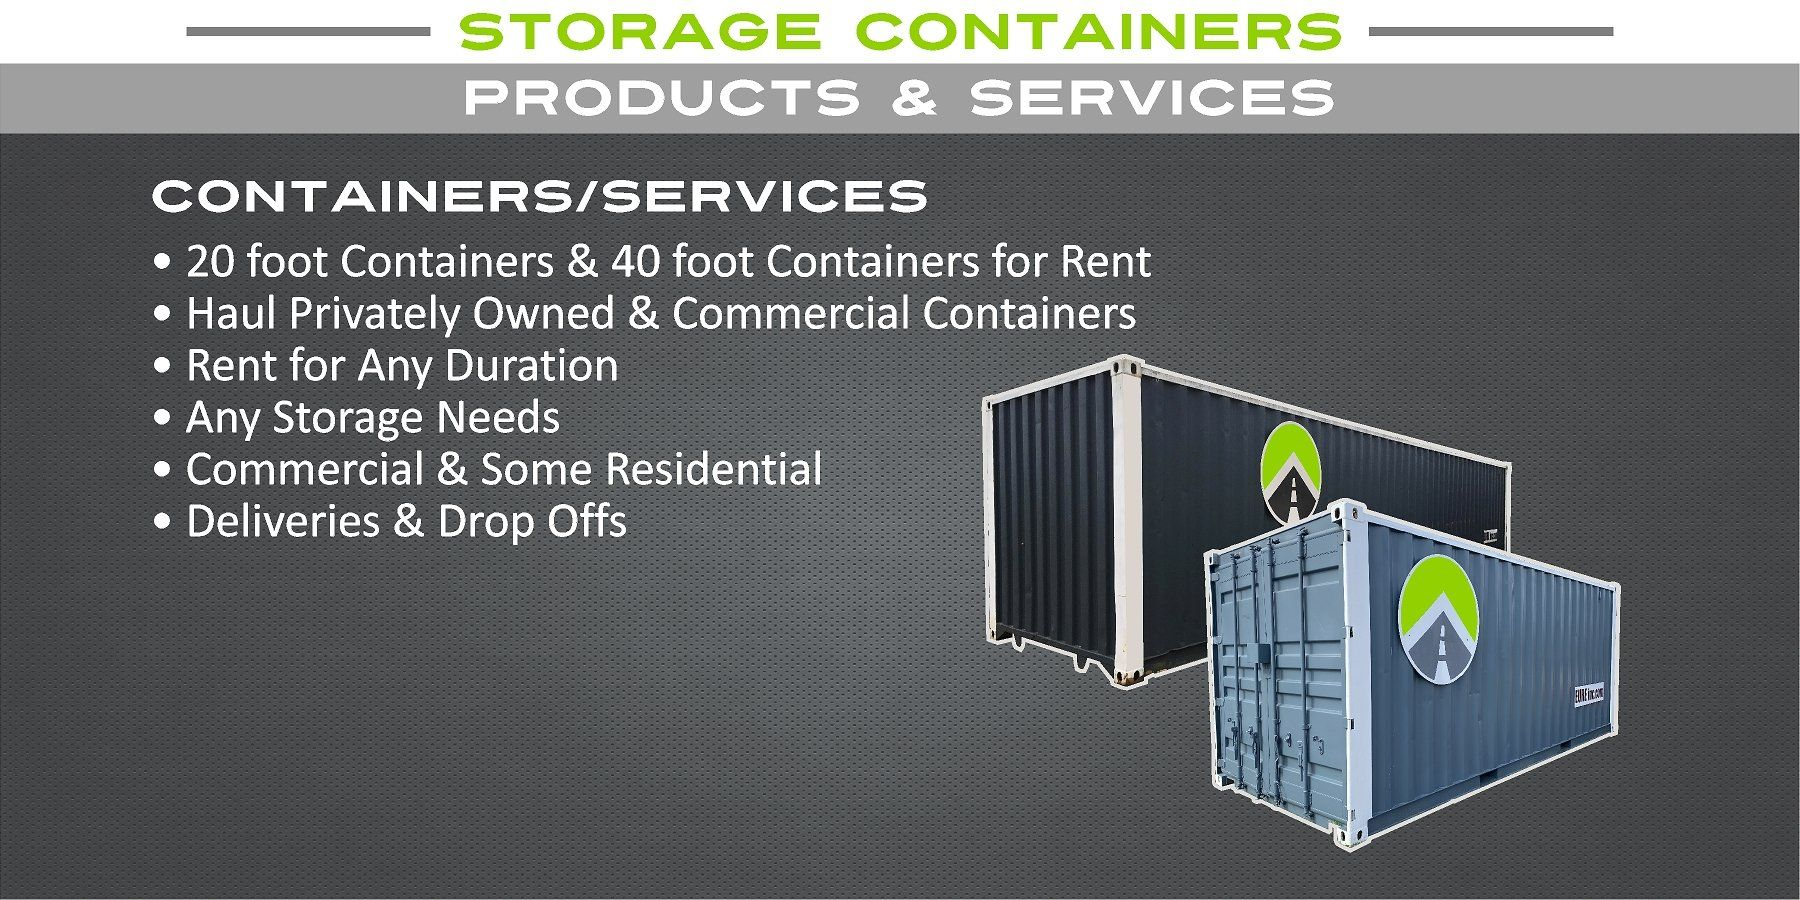 Storage Container Products & Services